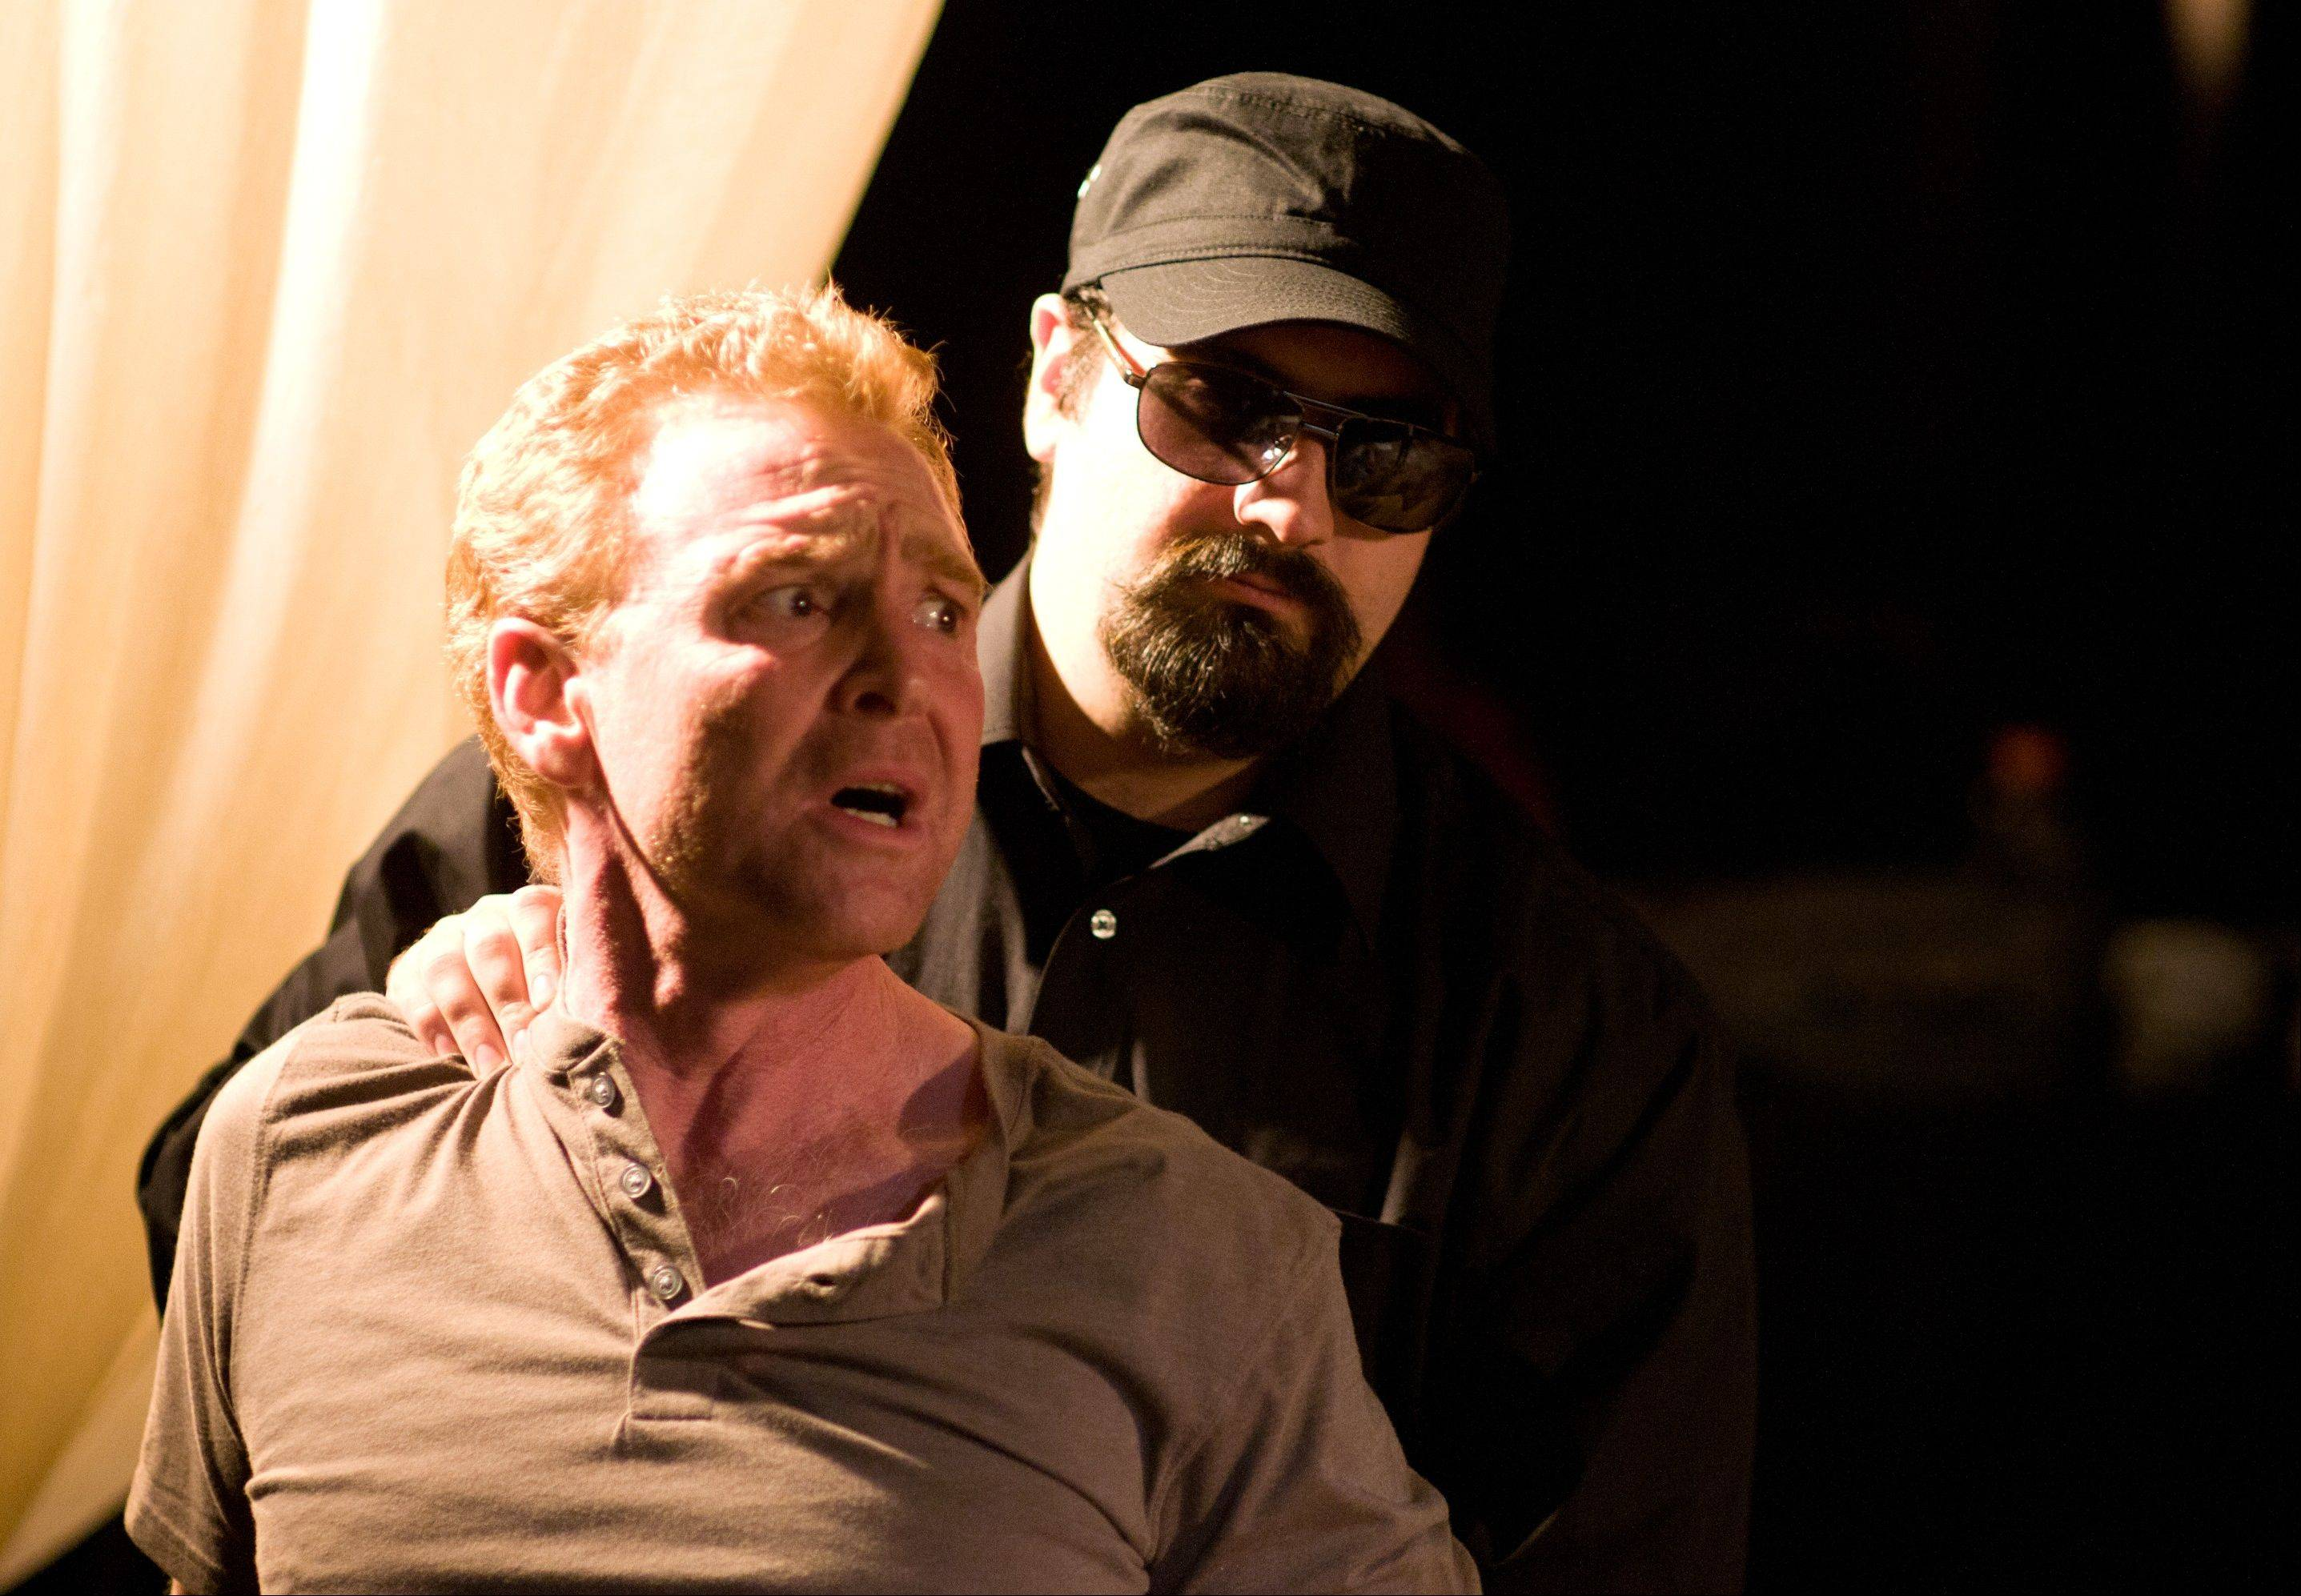 Caleb Donat, left, as the ill-treated Antonio, is among the standouts in Janus Theatre's production of